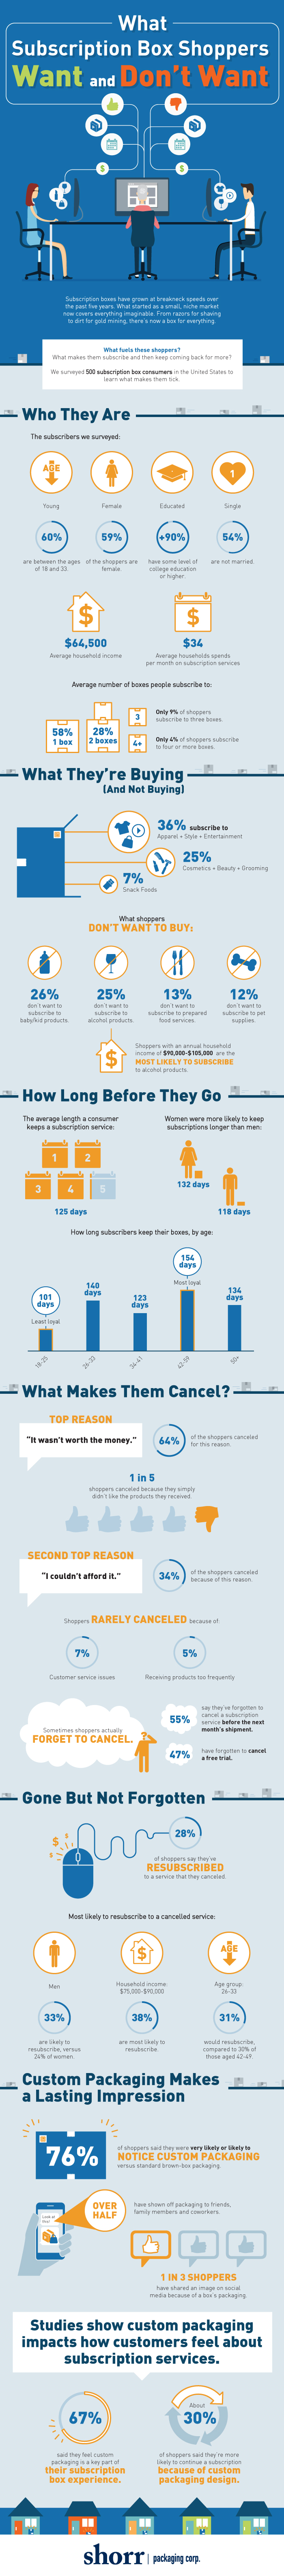 What Subscription Box Shoppers Want [Infographic]